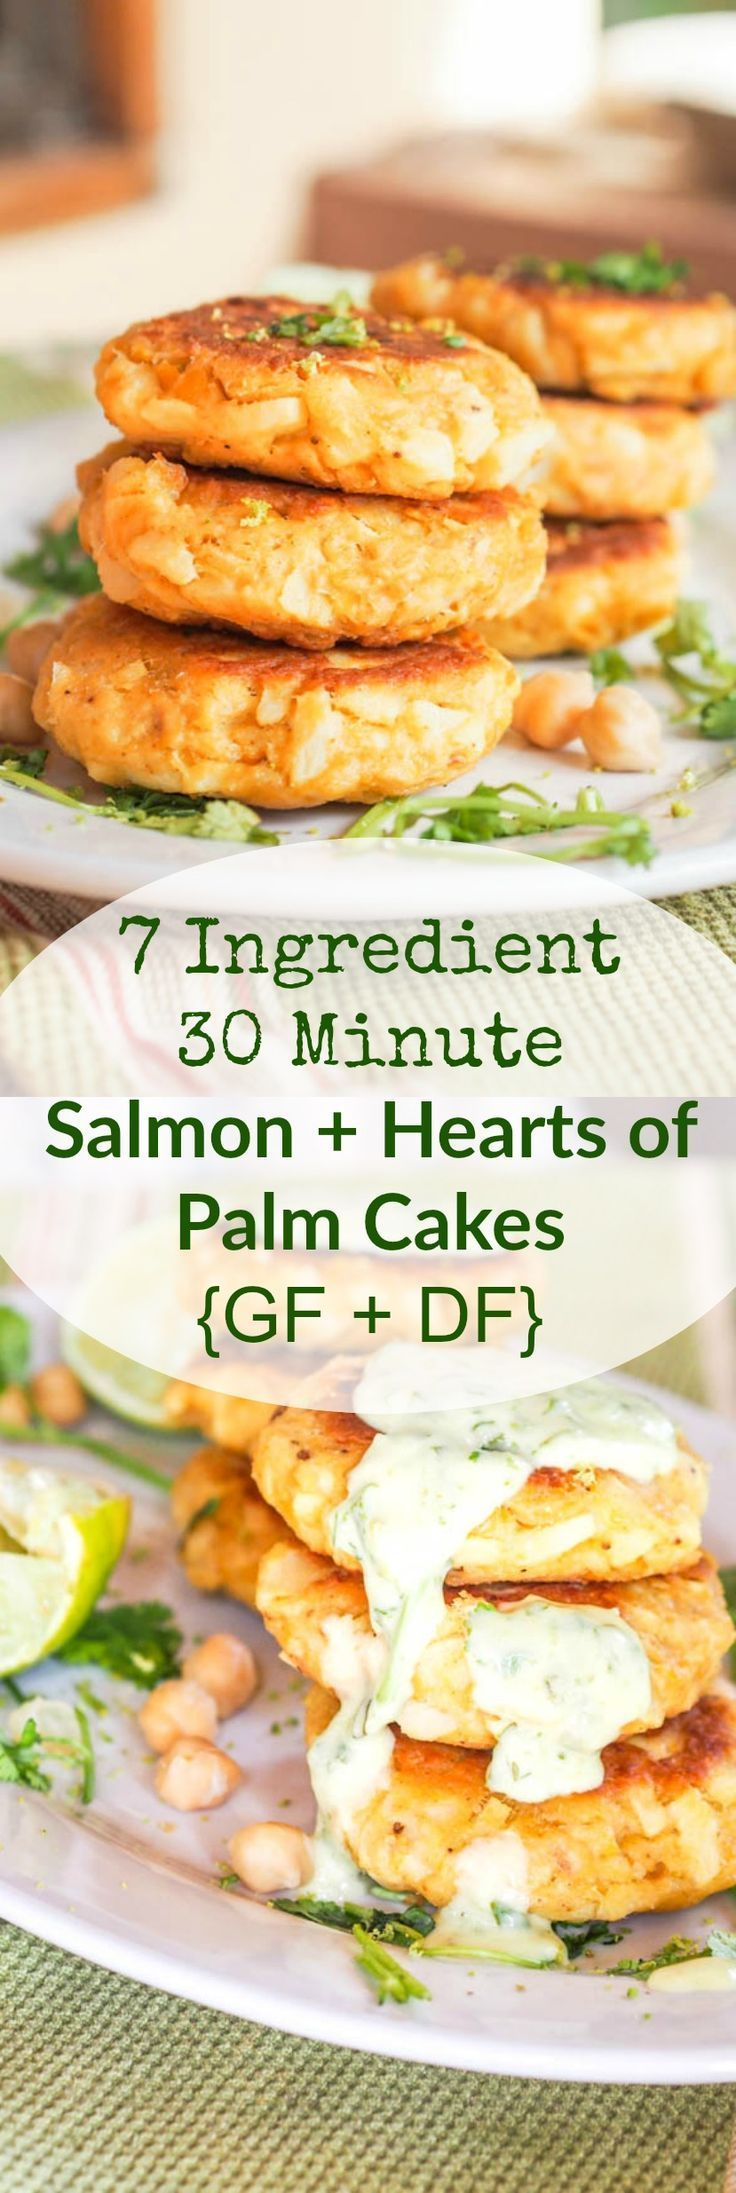 Super soft and delicious 30 minute seven ingredient salmon cakes with hearts of palm and chickpeas. A perfect gluten free and dairy free lunch or dinner. Serve with a home made Cilantro Lime Aioli for the ultimate flavor explosion.